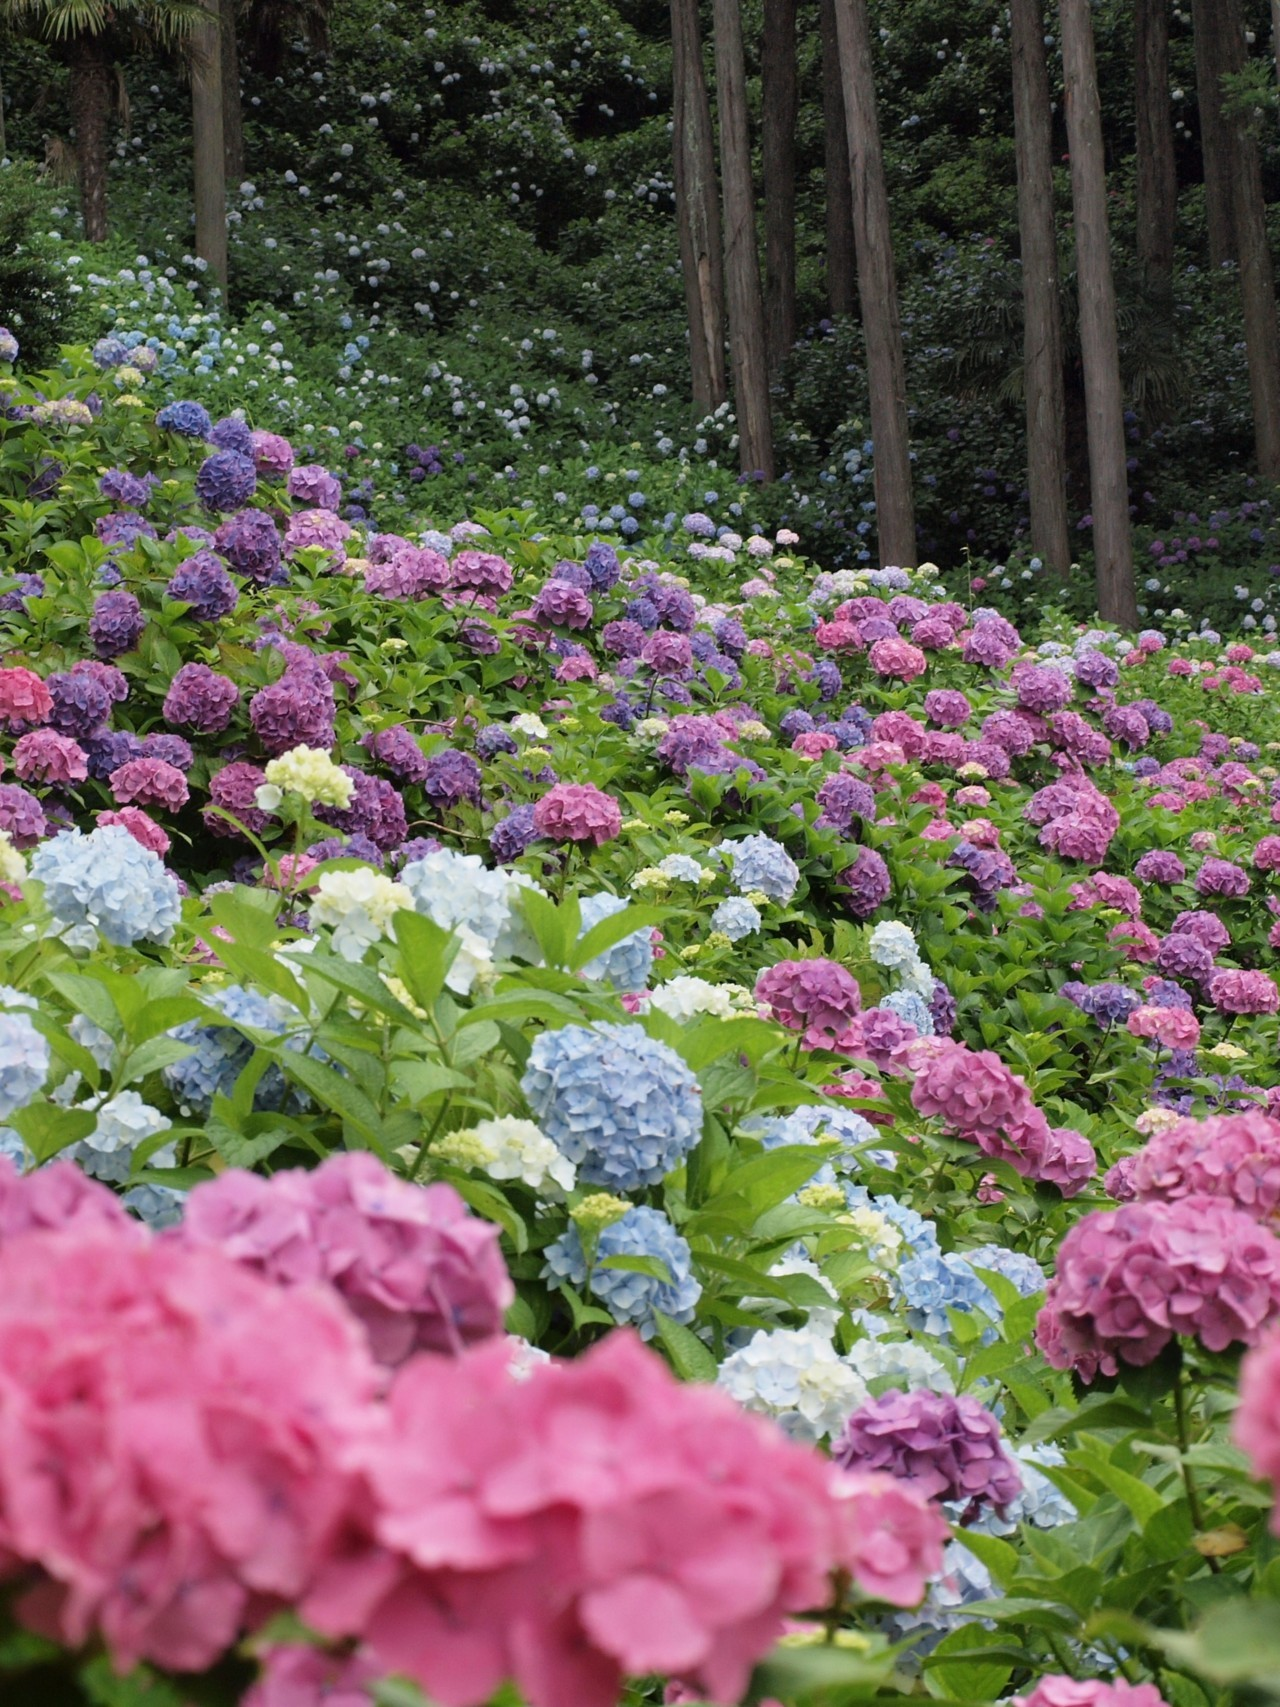 This is quite a remarkable picture considering that the colour of Hydrangeas are determined by two factors: the amount of light the plant receives and the pH of the soil. Though they will tolerate full sun, which they appear to be receiving in this photo, they much prefer and will thrive in partially shady conditions. The blue flowers are produced by a highly acidic soil, while the pink are produced by a neutral or only slightly acidic soil. Considering these plants are bunched so closely together, there must be quite an amazing blend of fertilizers in the soil to grow such a variety of colours in such a small area.